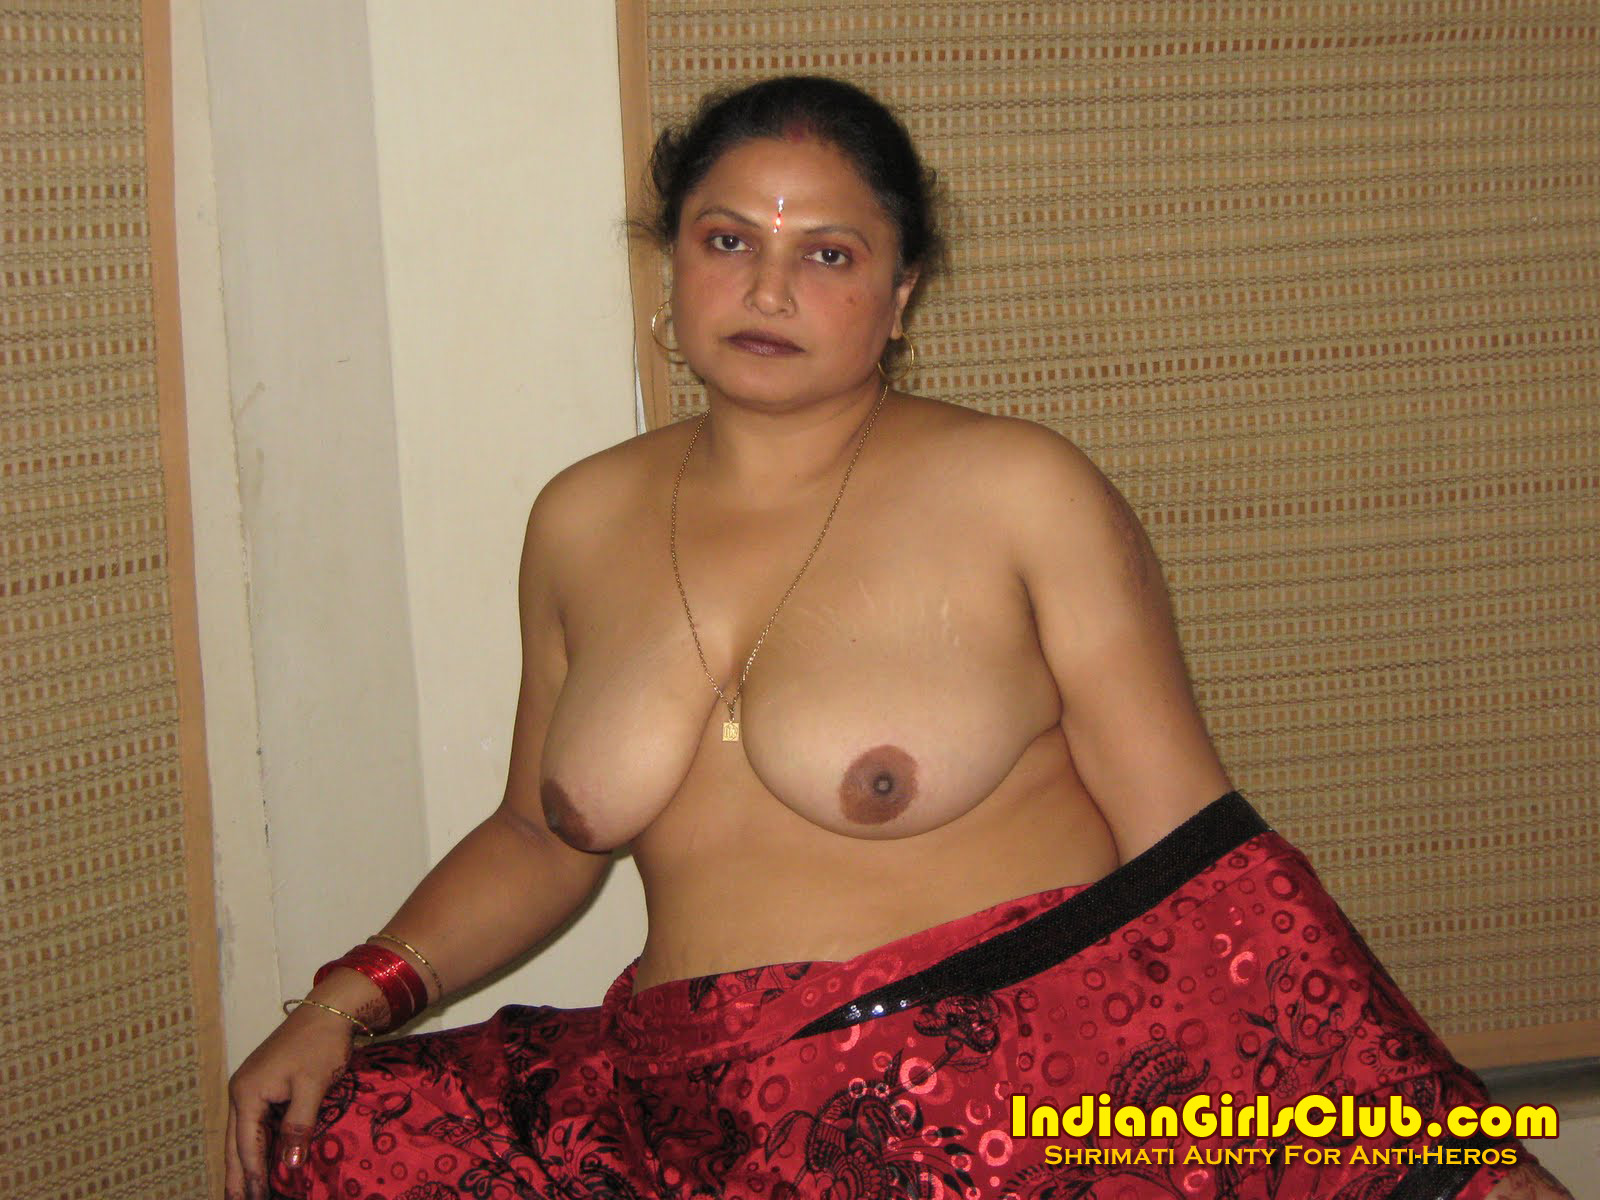 Desi bitch nude picture gallery sexy pics